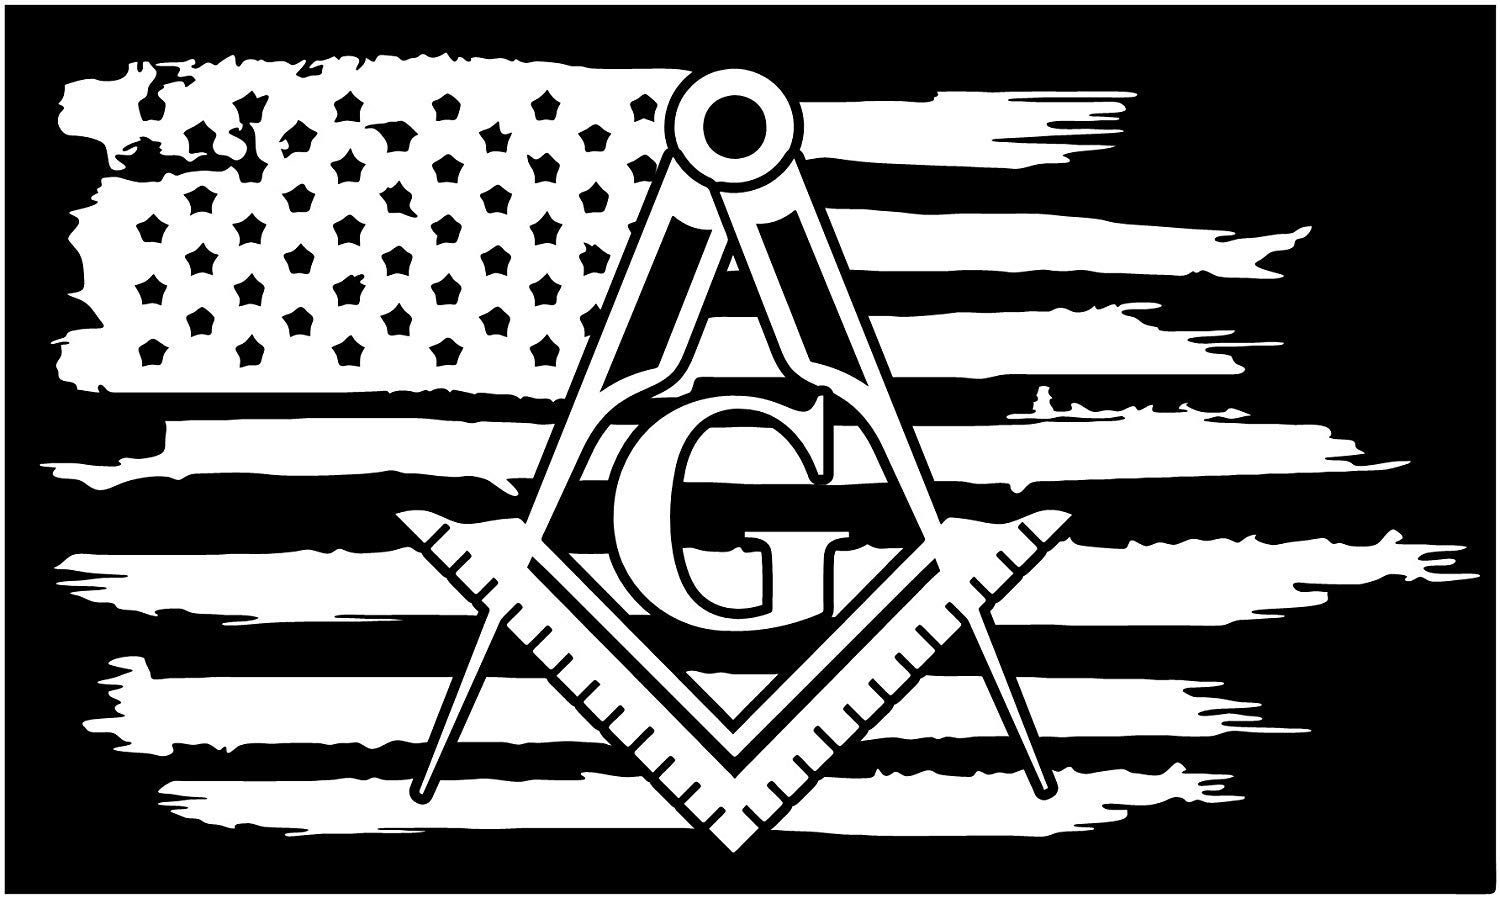 American flag with masonic clipart clipart images gallery.